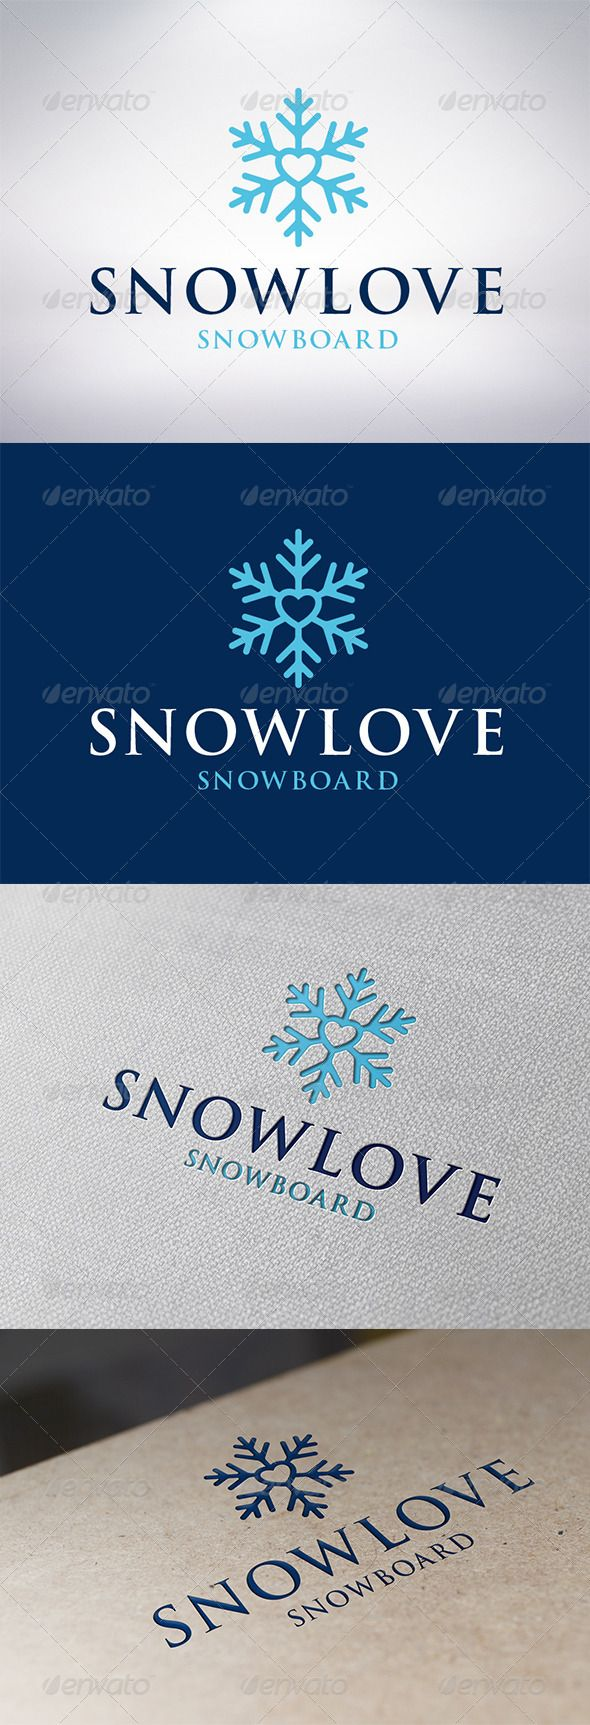 Snow Love Logo Template #GraphicRiver - Three color version: color, greyscale and single color. - The logo is 100% resizable. - You can change text and colors very easy using the named and organized layers that includes the file. - The typography used is Trajan Pro a system default font. Created: 1 December 13 Graphics Files Included: